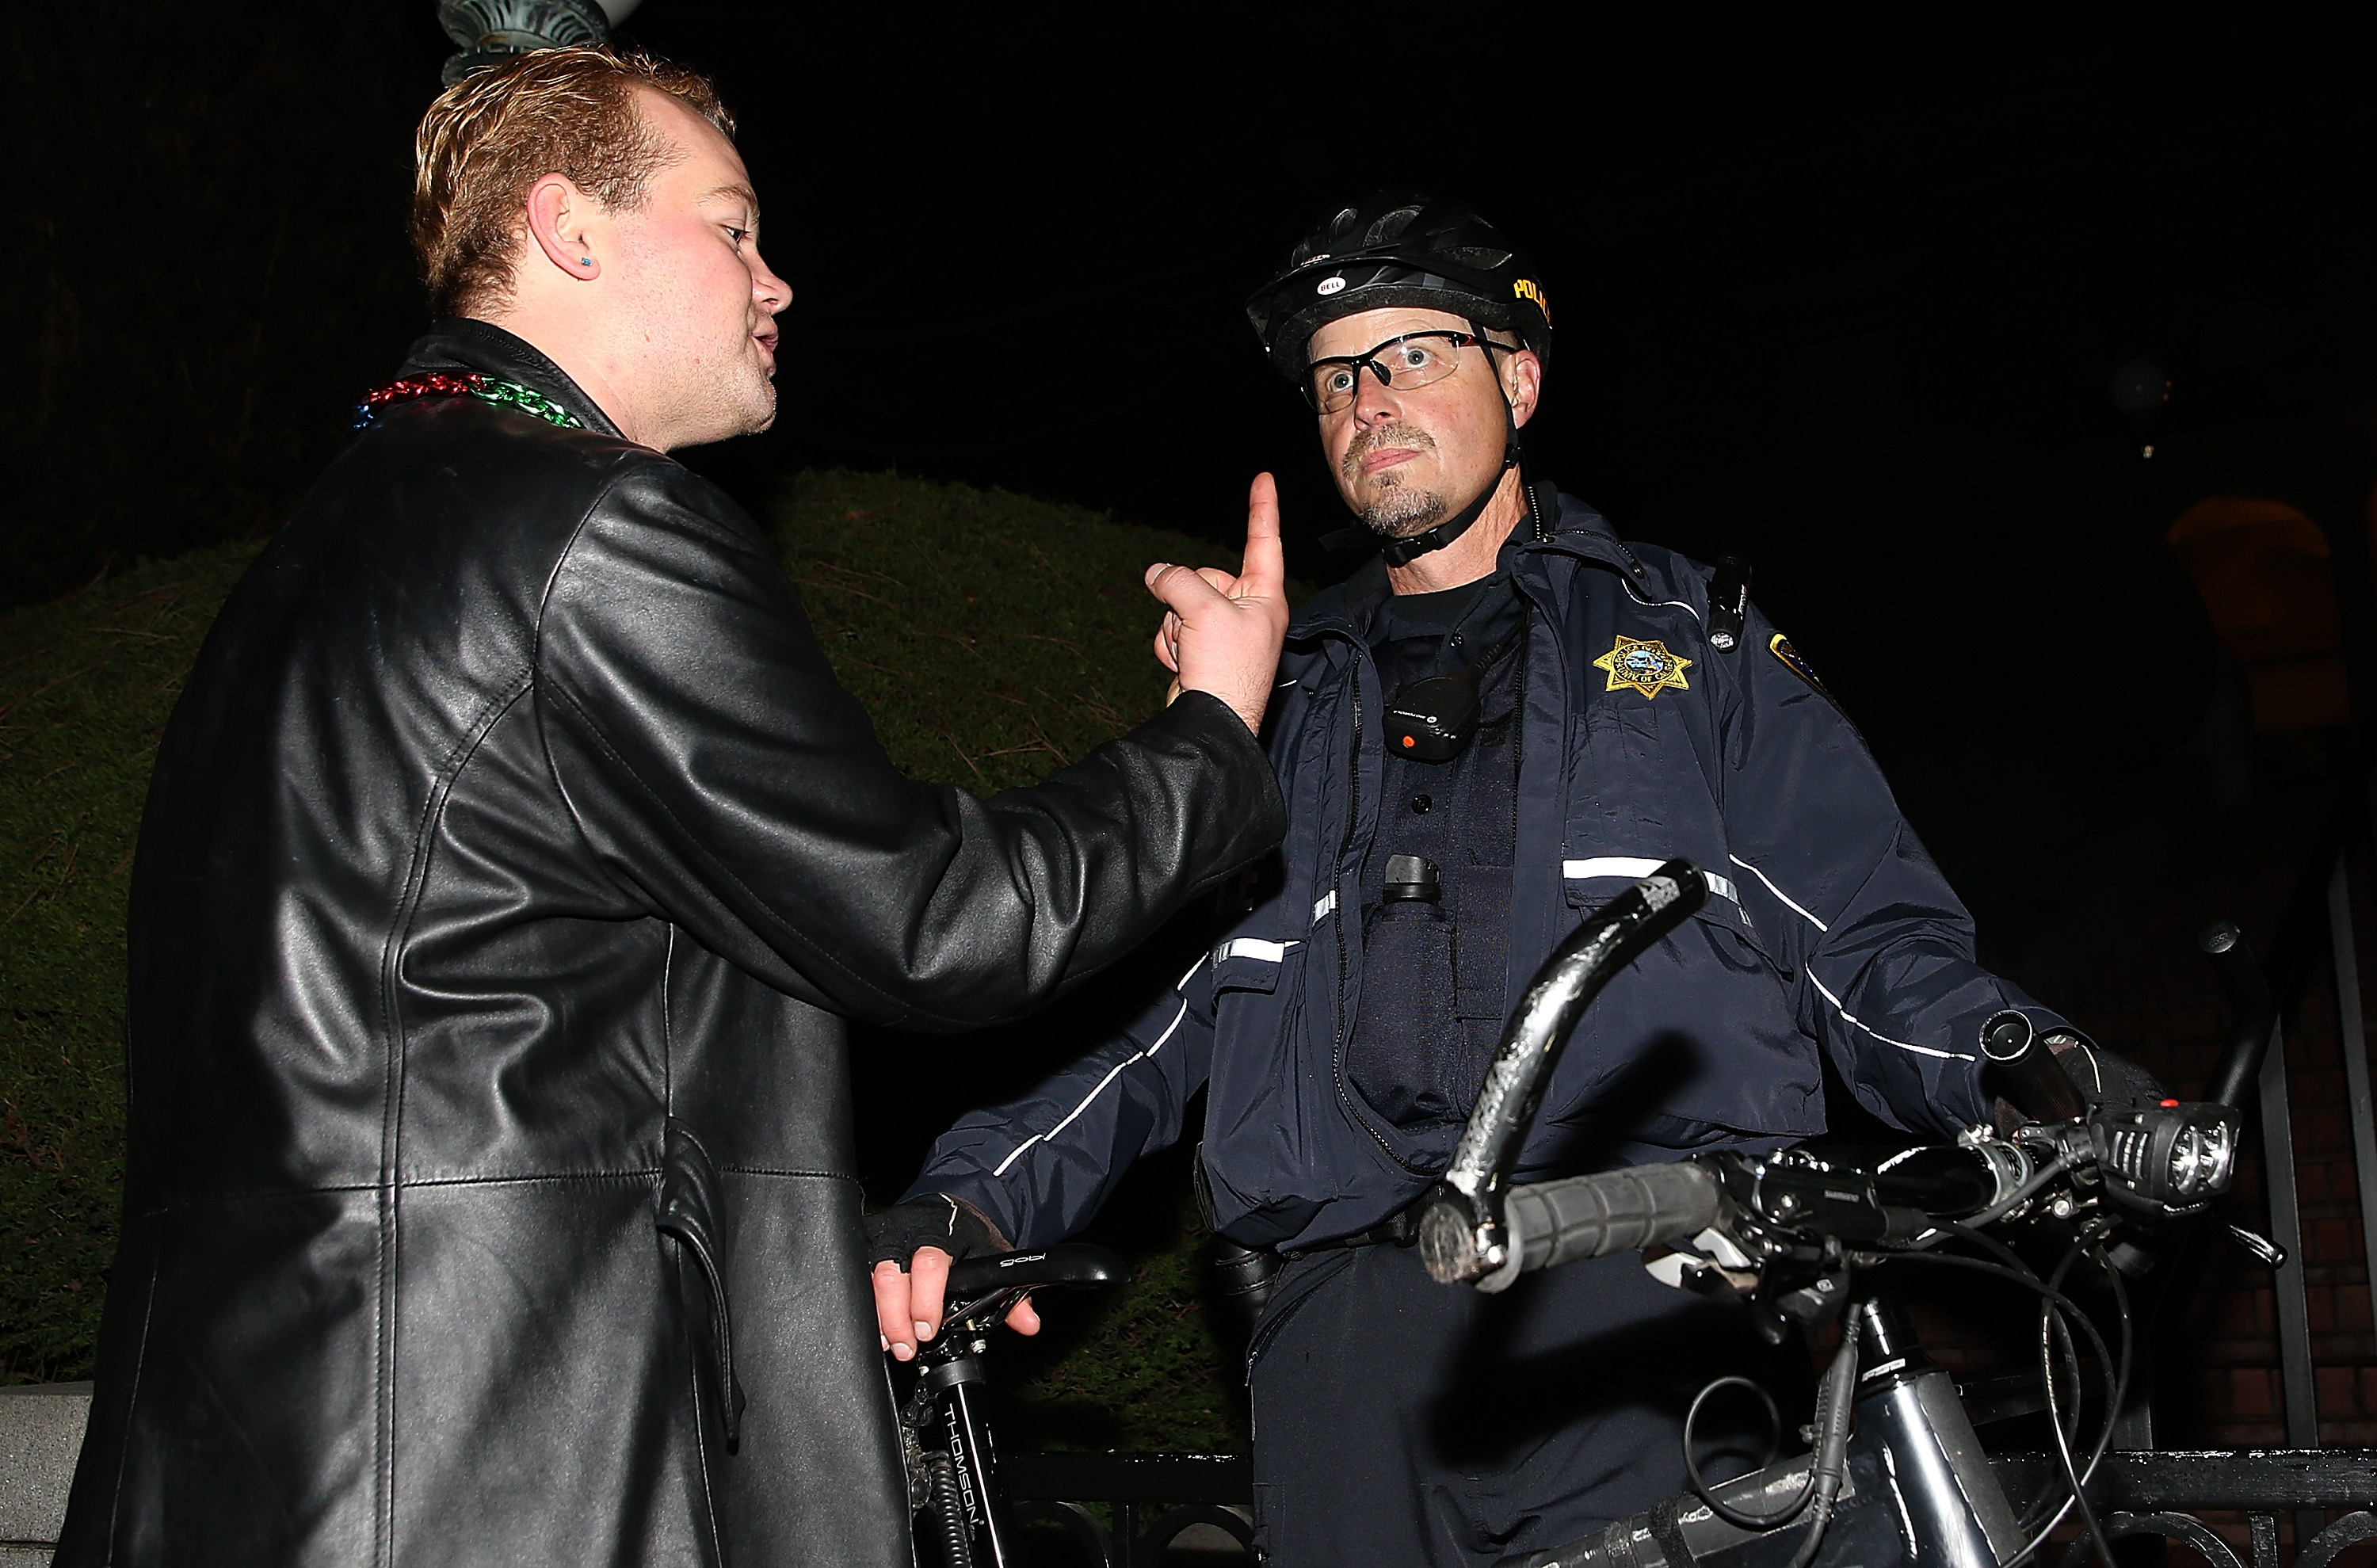 A protester confronts a UC Berkeley police officer during a demonstration over recent grand jury decisions in police-involved deaths on December 10, 2014 in Berkeley, California. Protesters have taken to the streets of Berkeley for a fifth straight night after a Staten Island, New York grand jury declined December 3 to indict New York City Police Officer Daniel Pantaleo in the chokehold death of Eric Garner.  (Photo by Justin Sullivan/Getty Images)